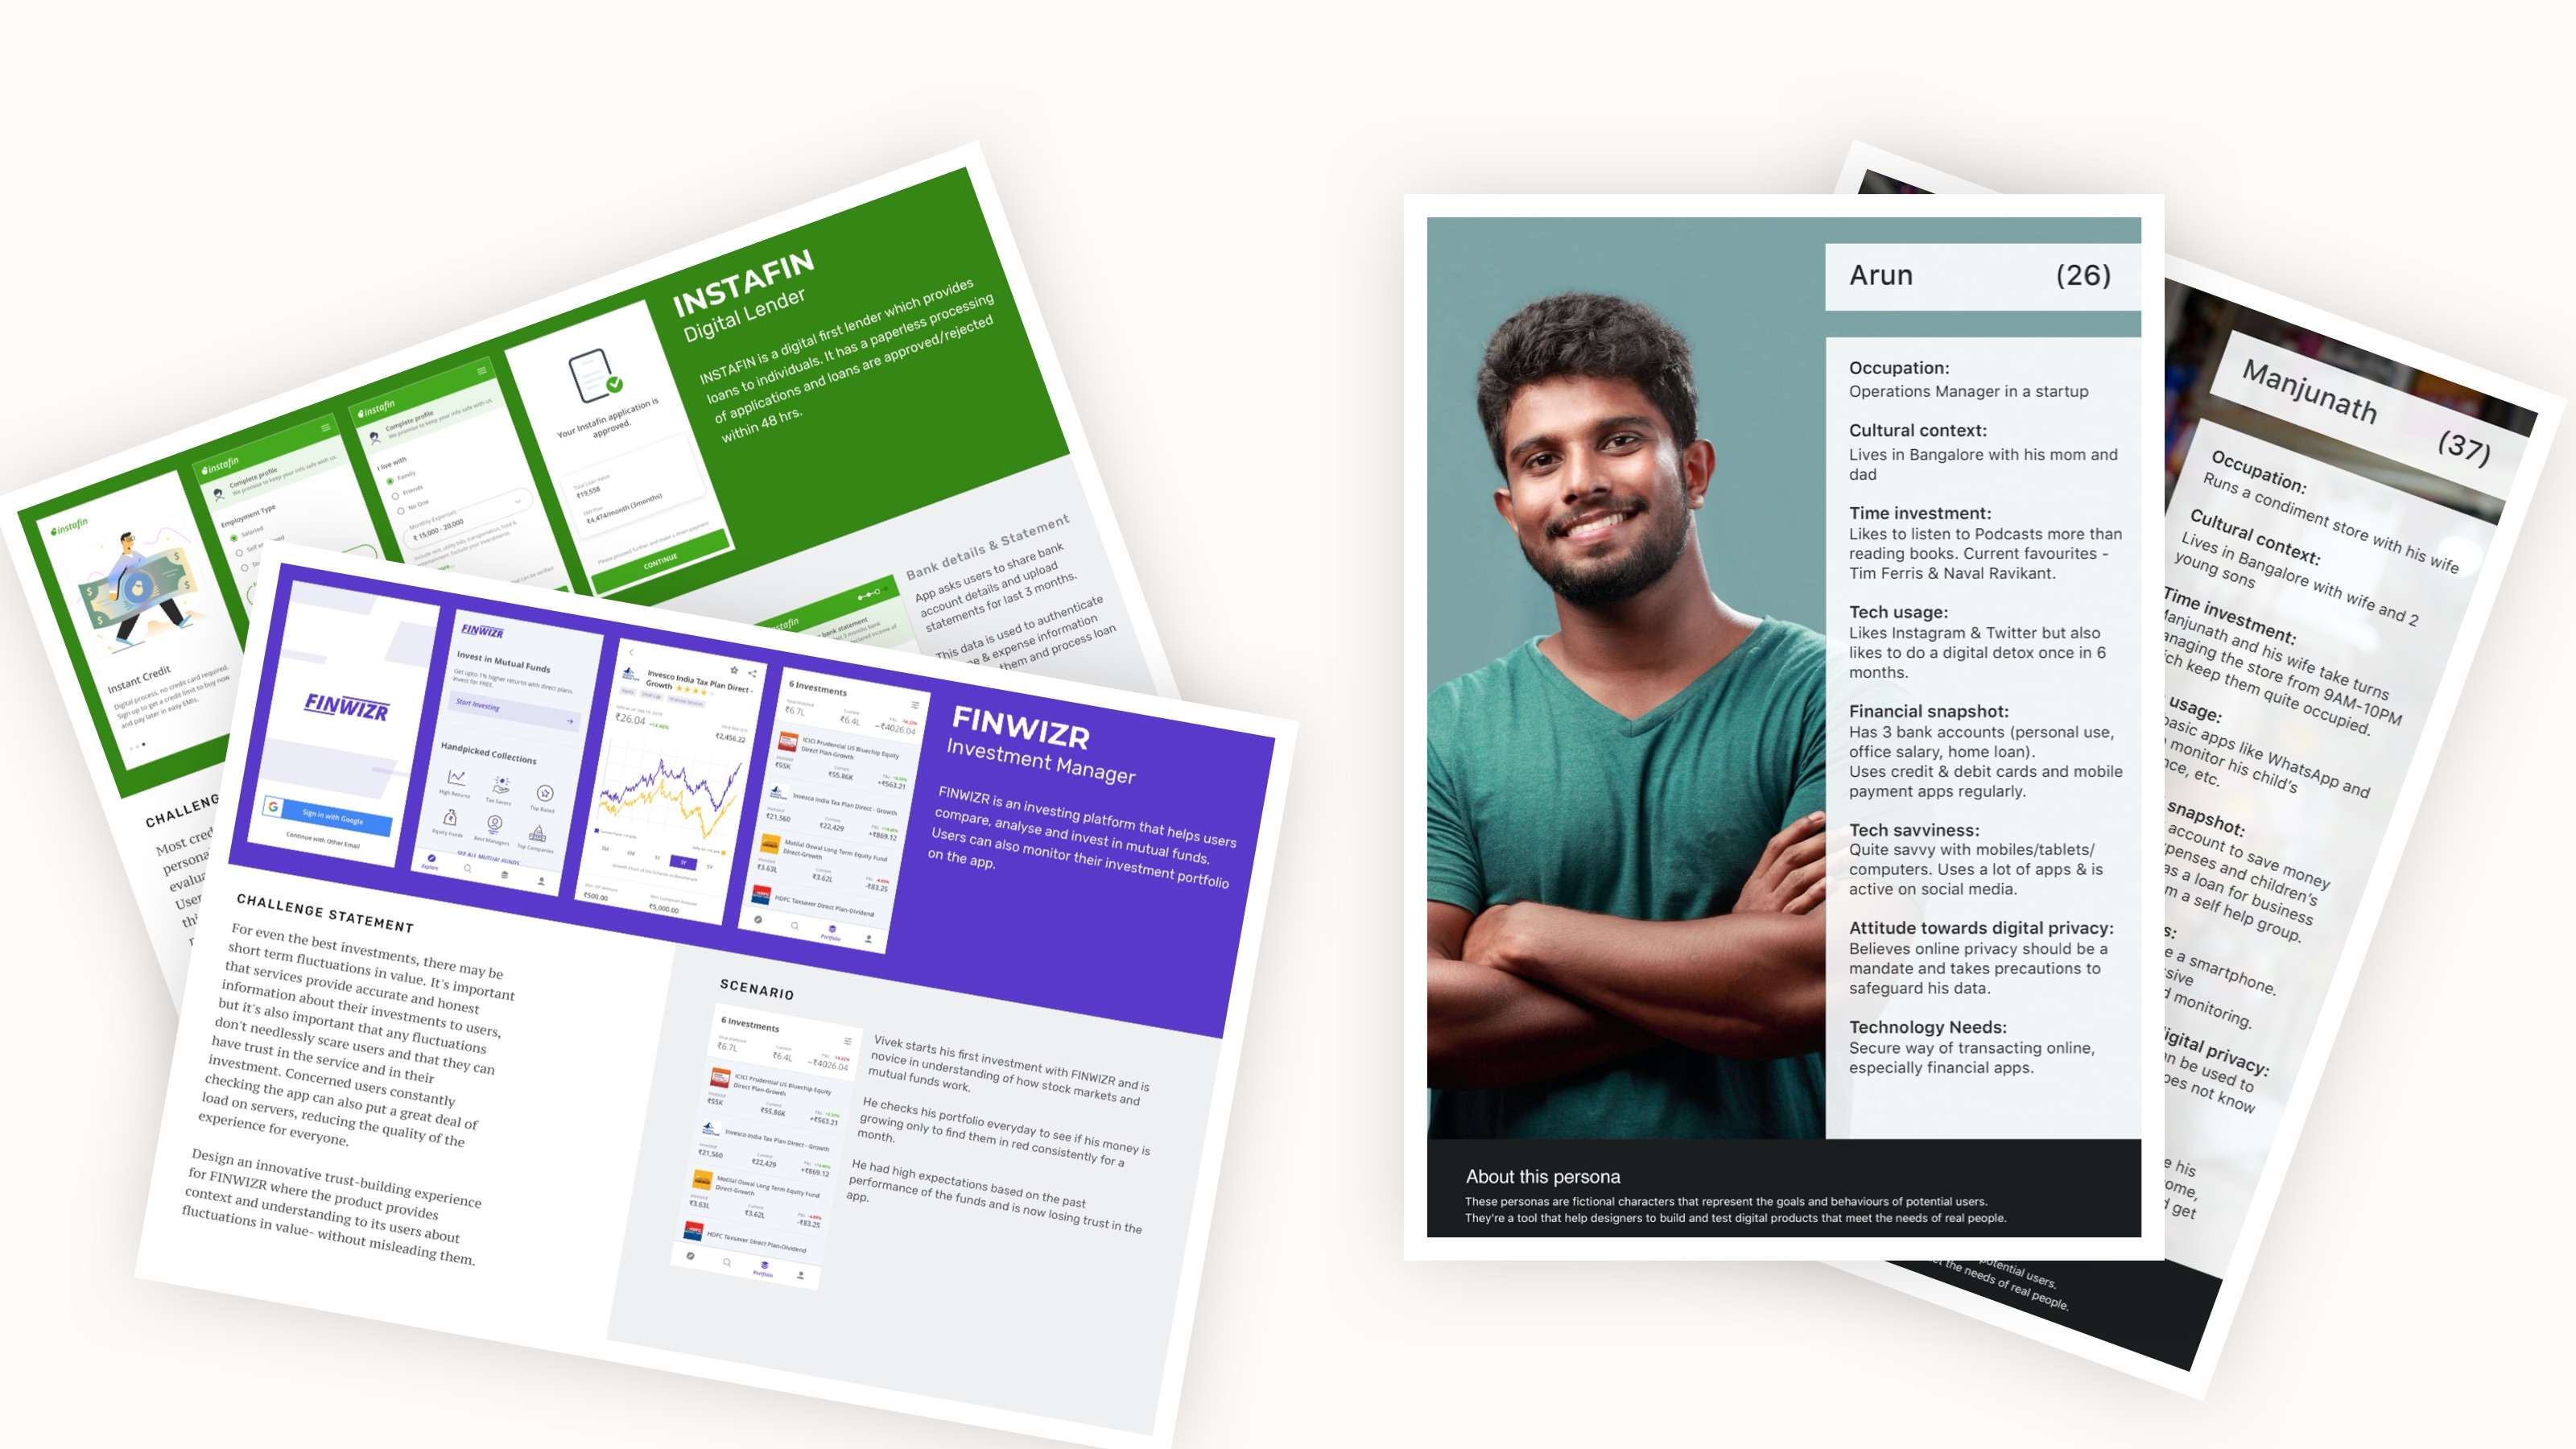 Design for bharat, user research and user persona